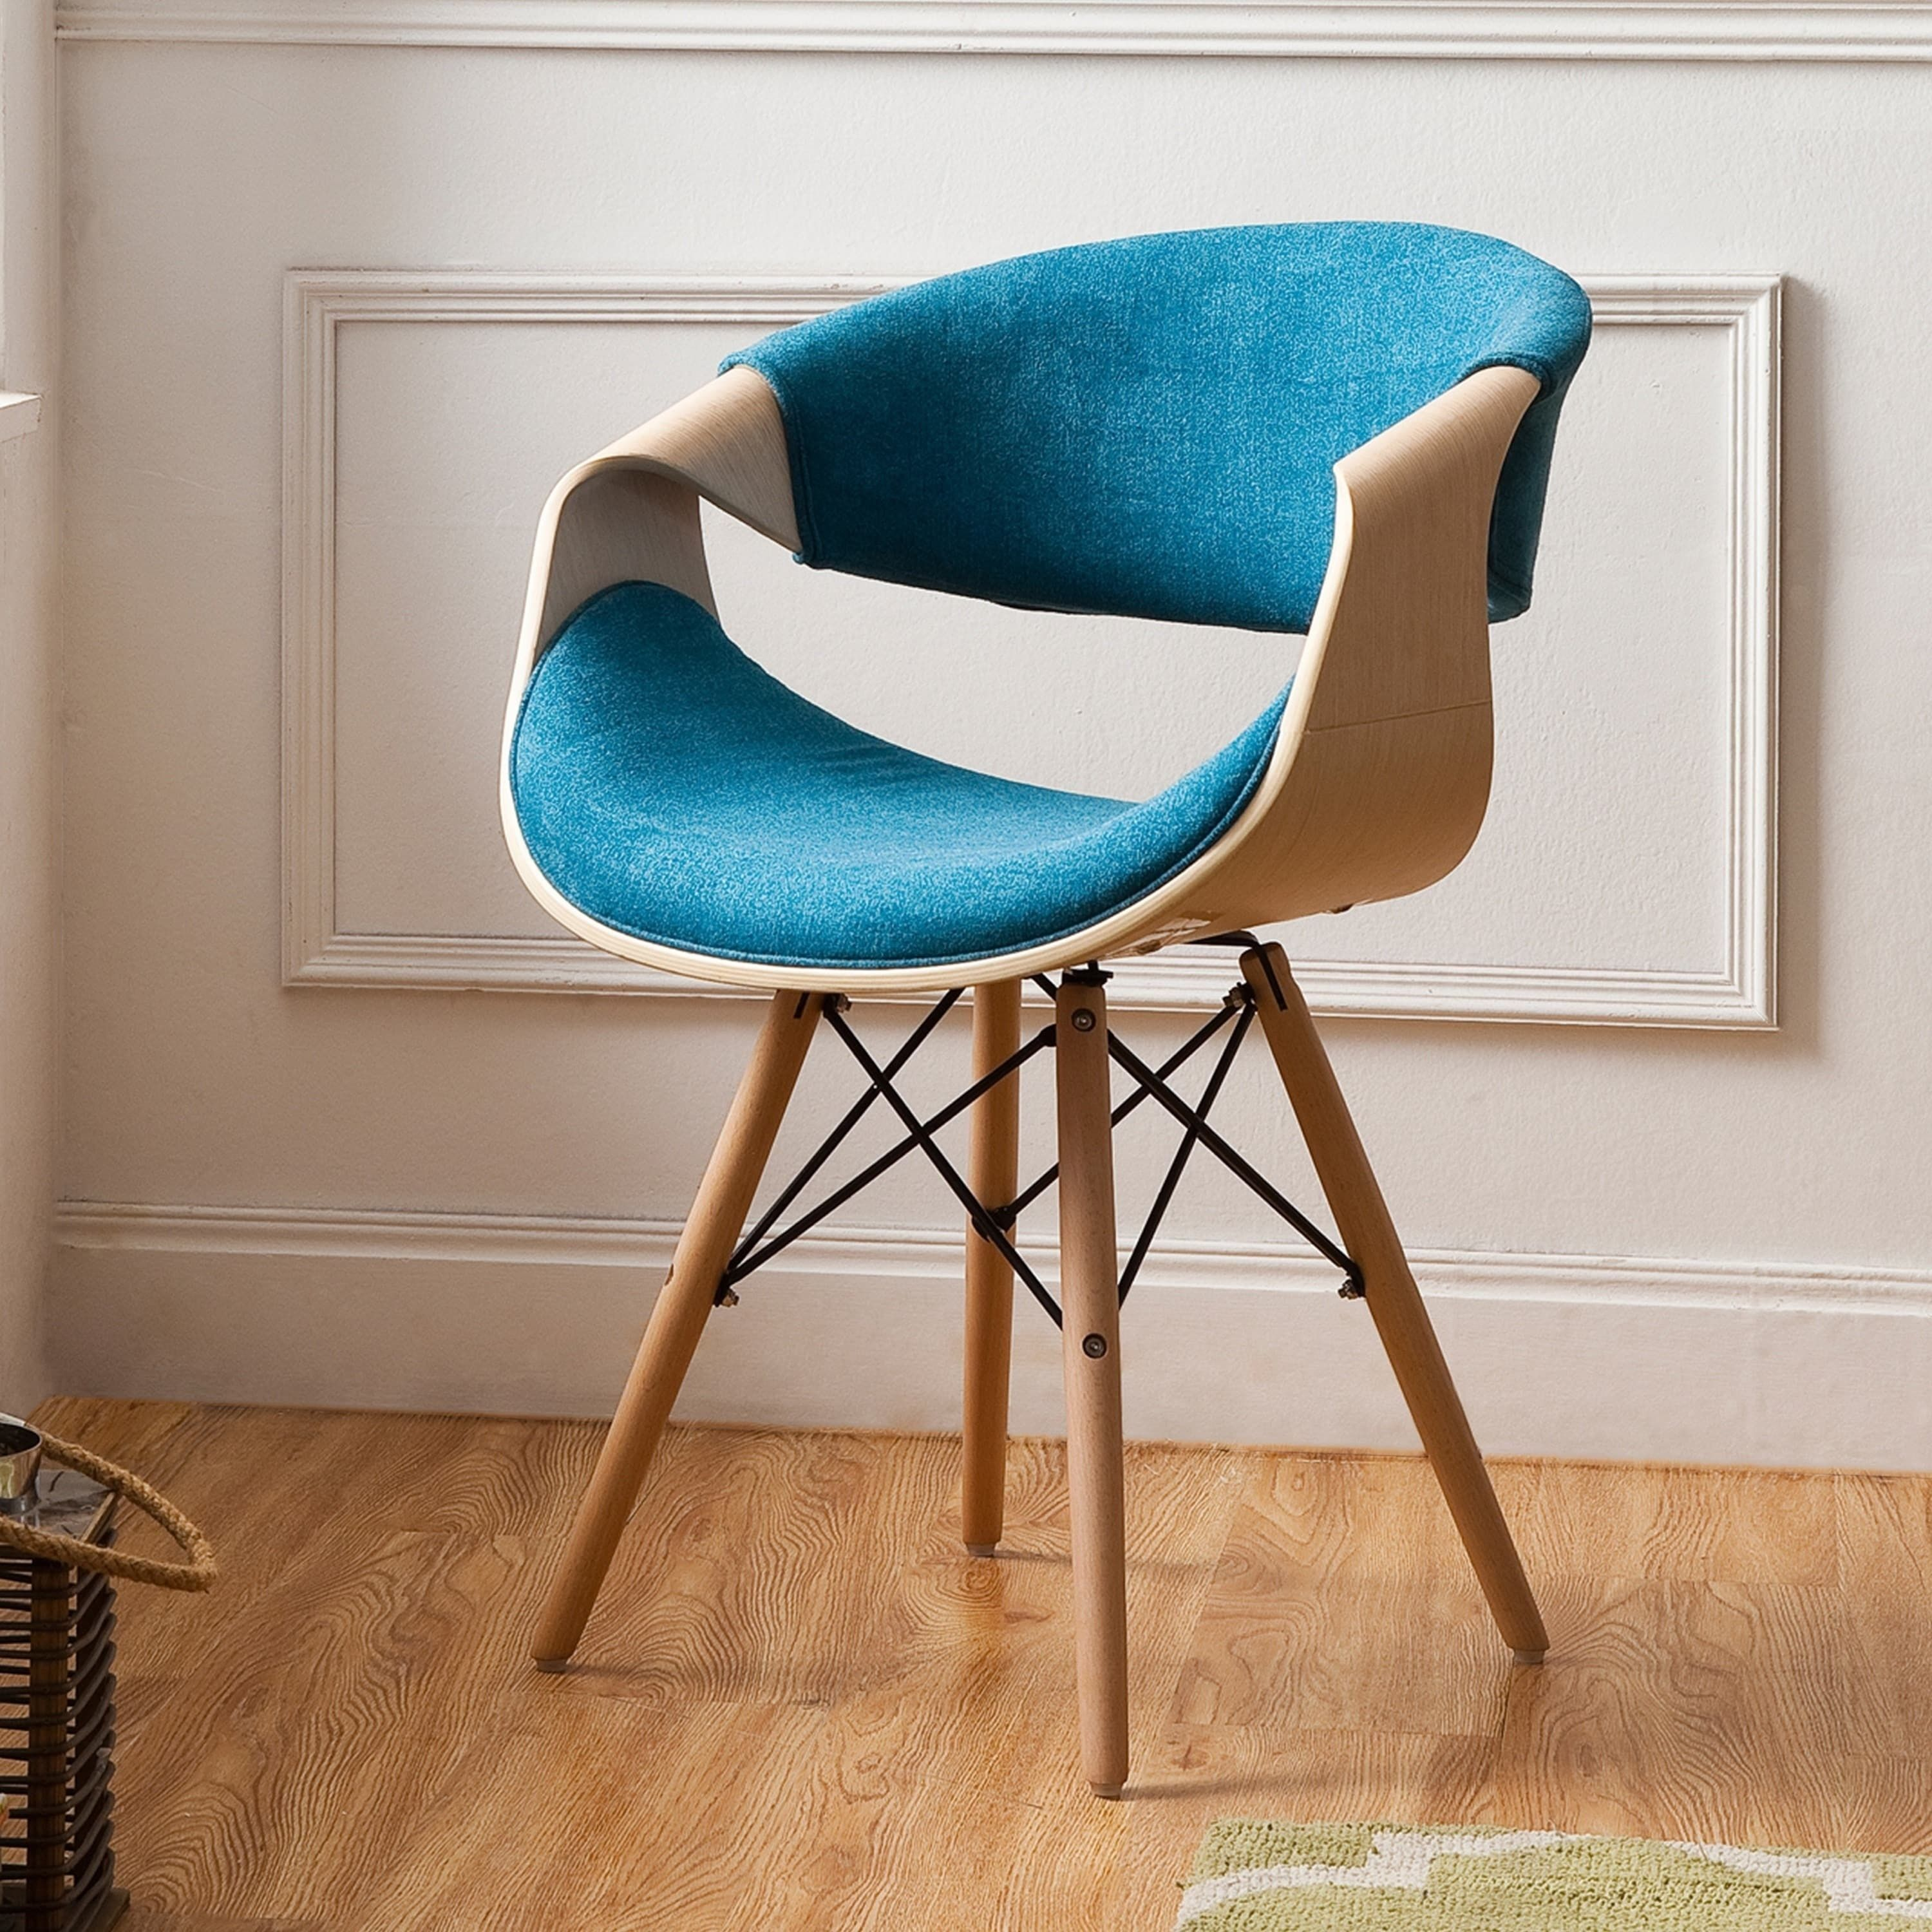 Admirable Palm Canyon Bombero Contemporary Teal Blue Velvet Accent Gamerscity Chair Design For Home Gamerscityorg